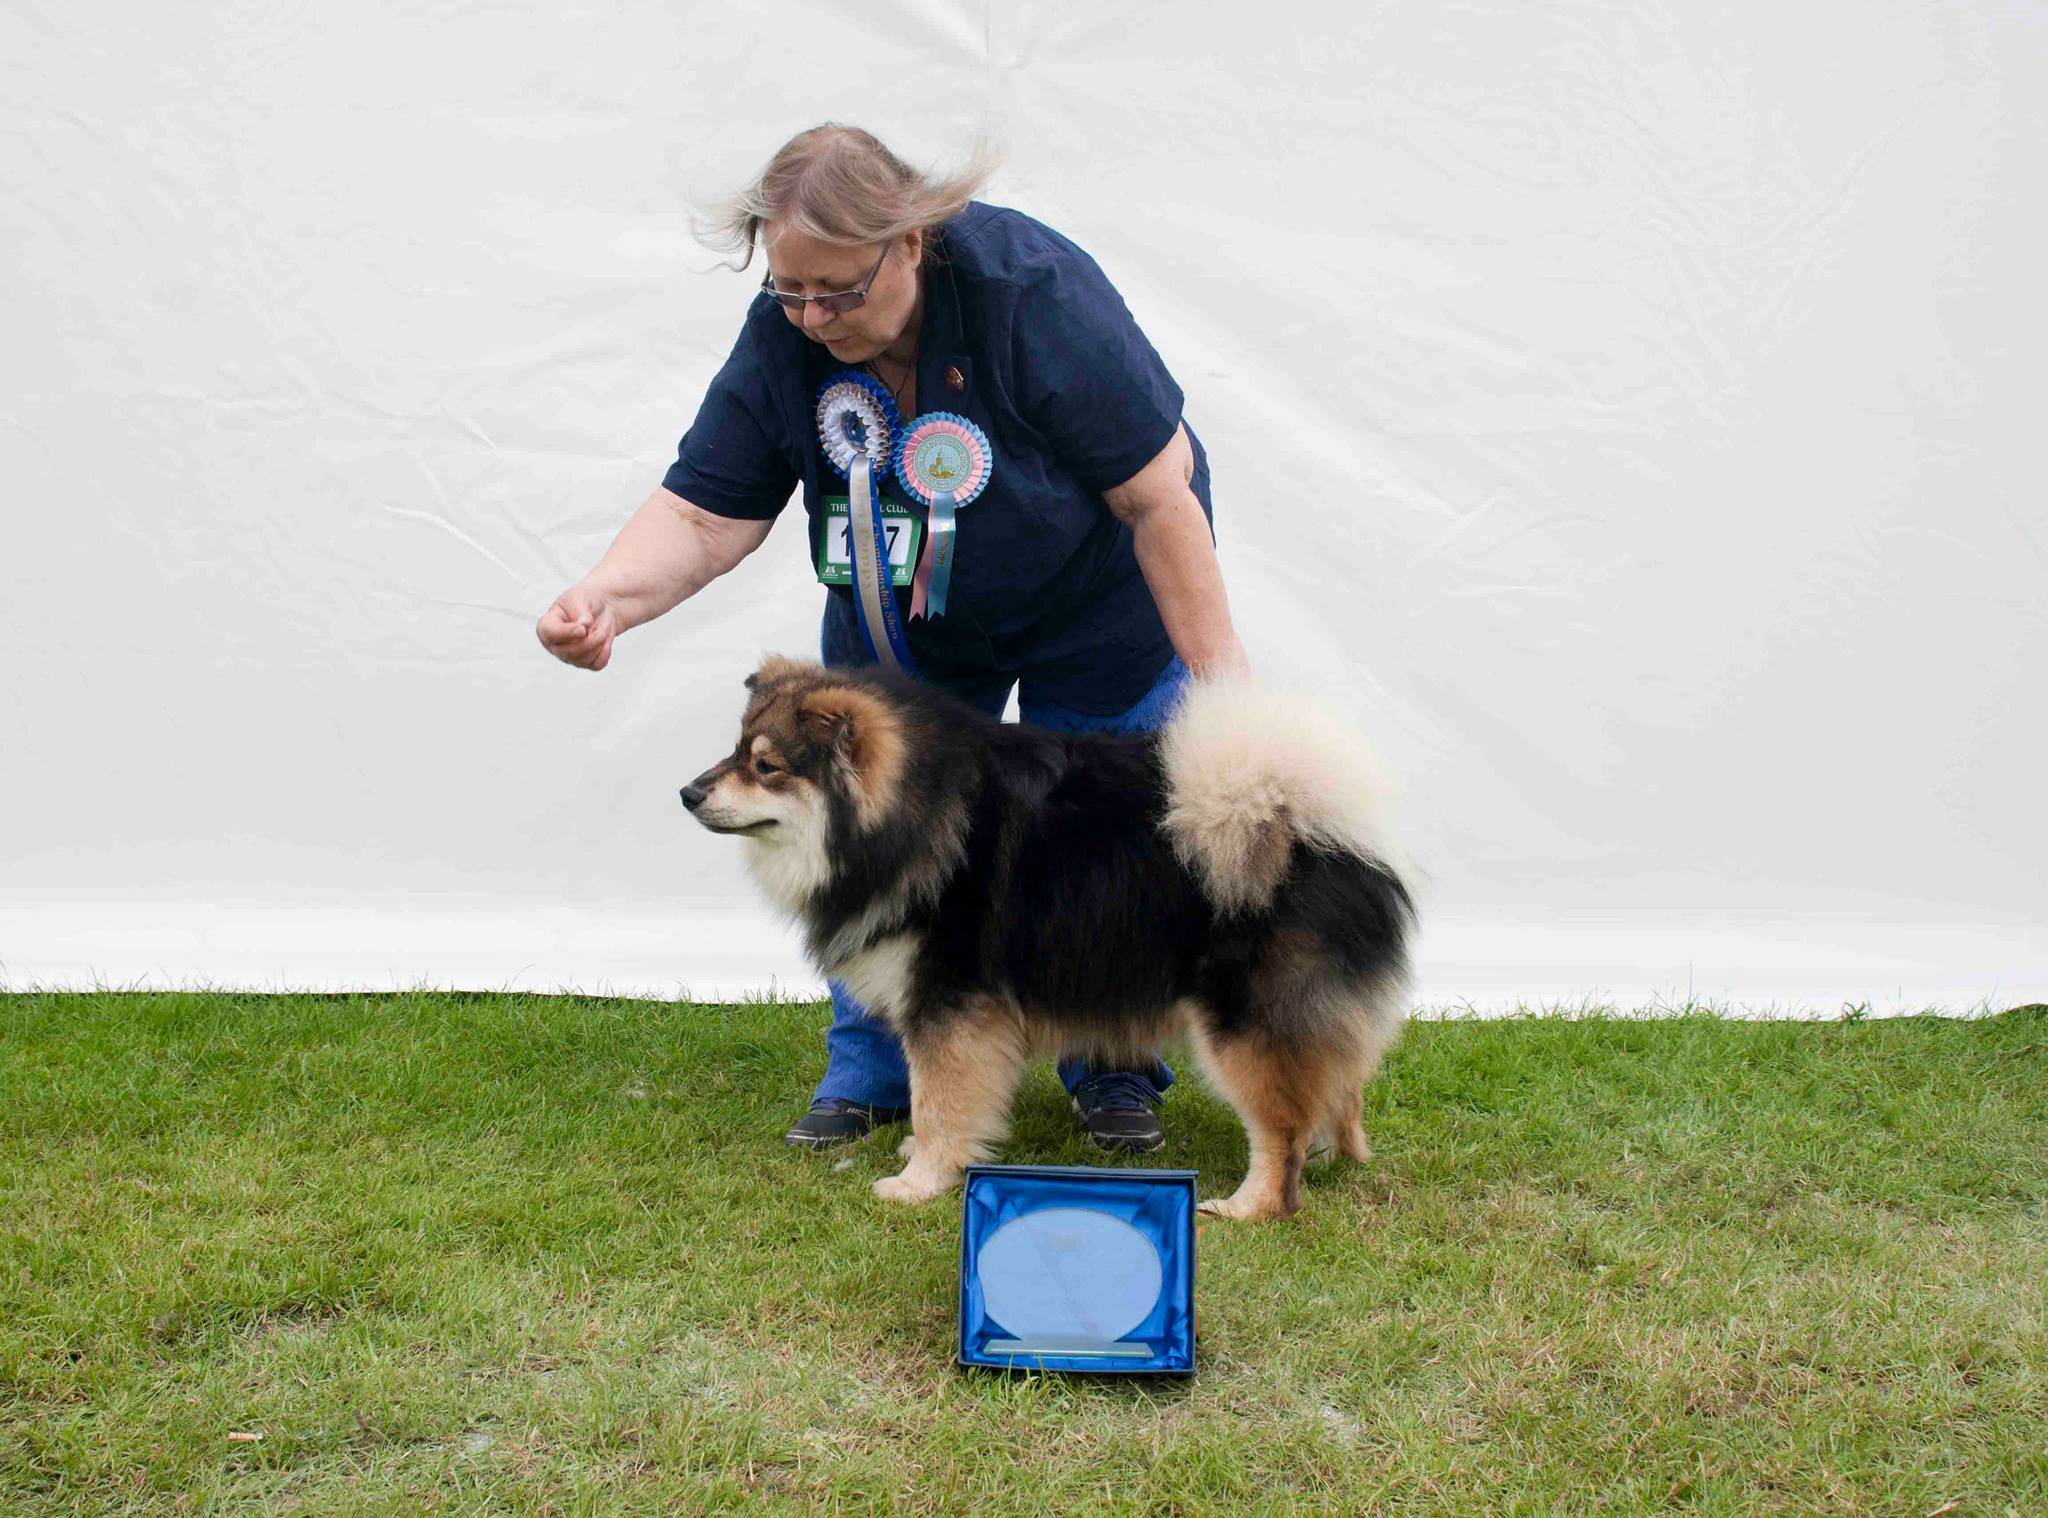 Where Is Windsor Championship Dog Show Held